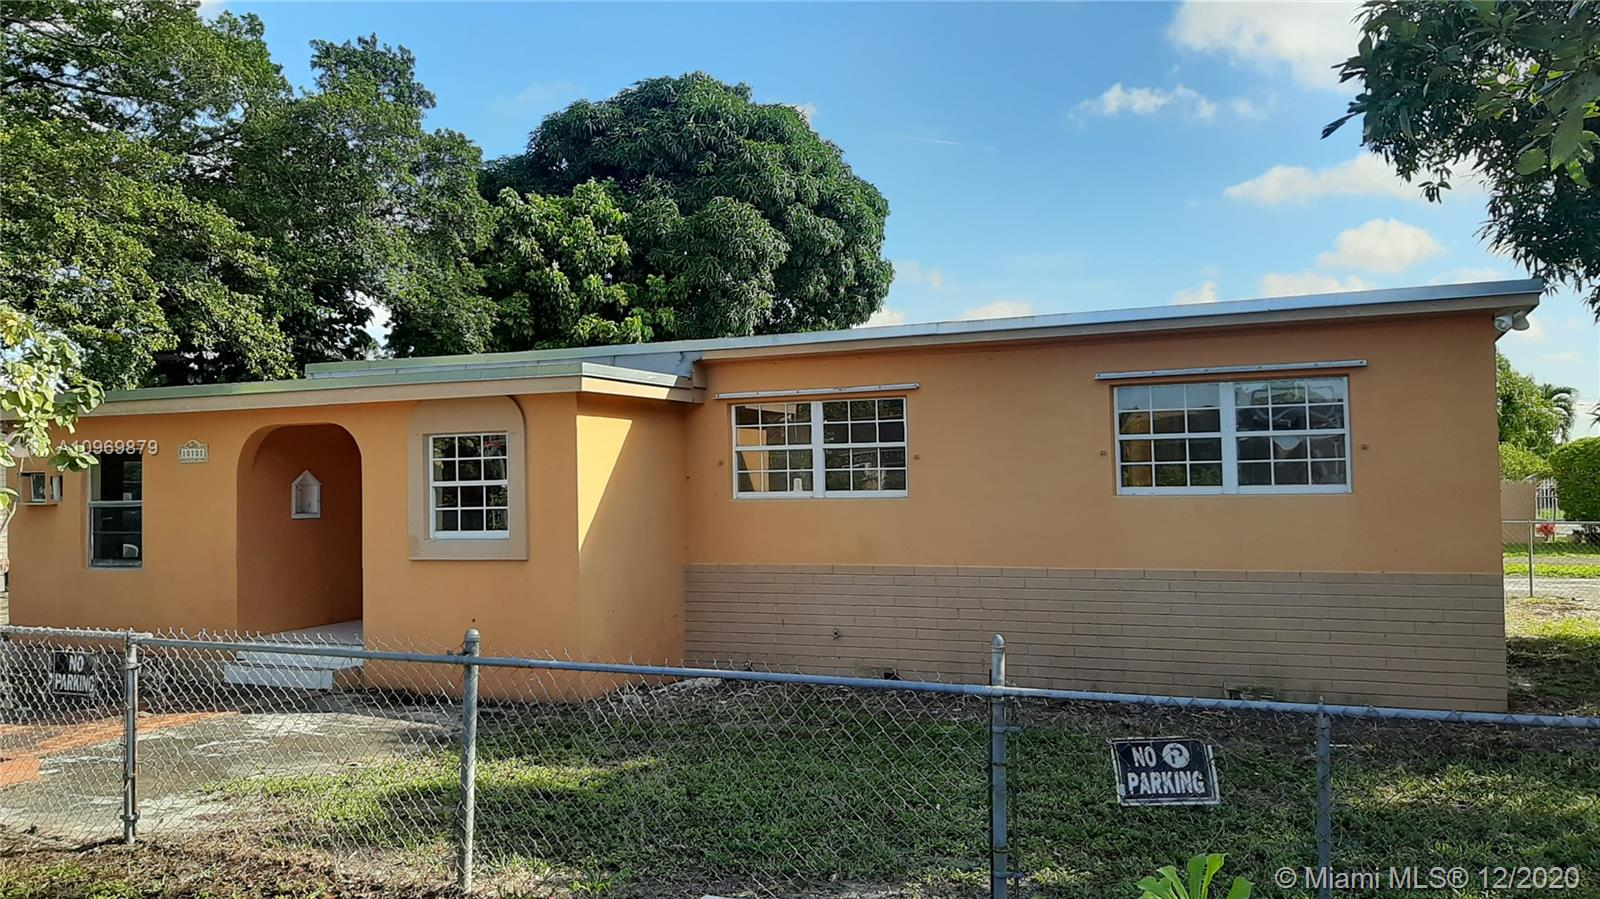 4/2 HOME. GREAT LOCATION. PROPERTY HAS A LARGE SHED WITH PERMITS. IDEAL FOR INVESTOR, OR FIRST TIME HOME BUYER. NEW ROOF. PROPERTY SOLD AS IS. PRICED TO SELL.